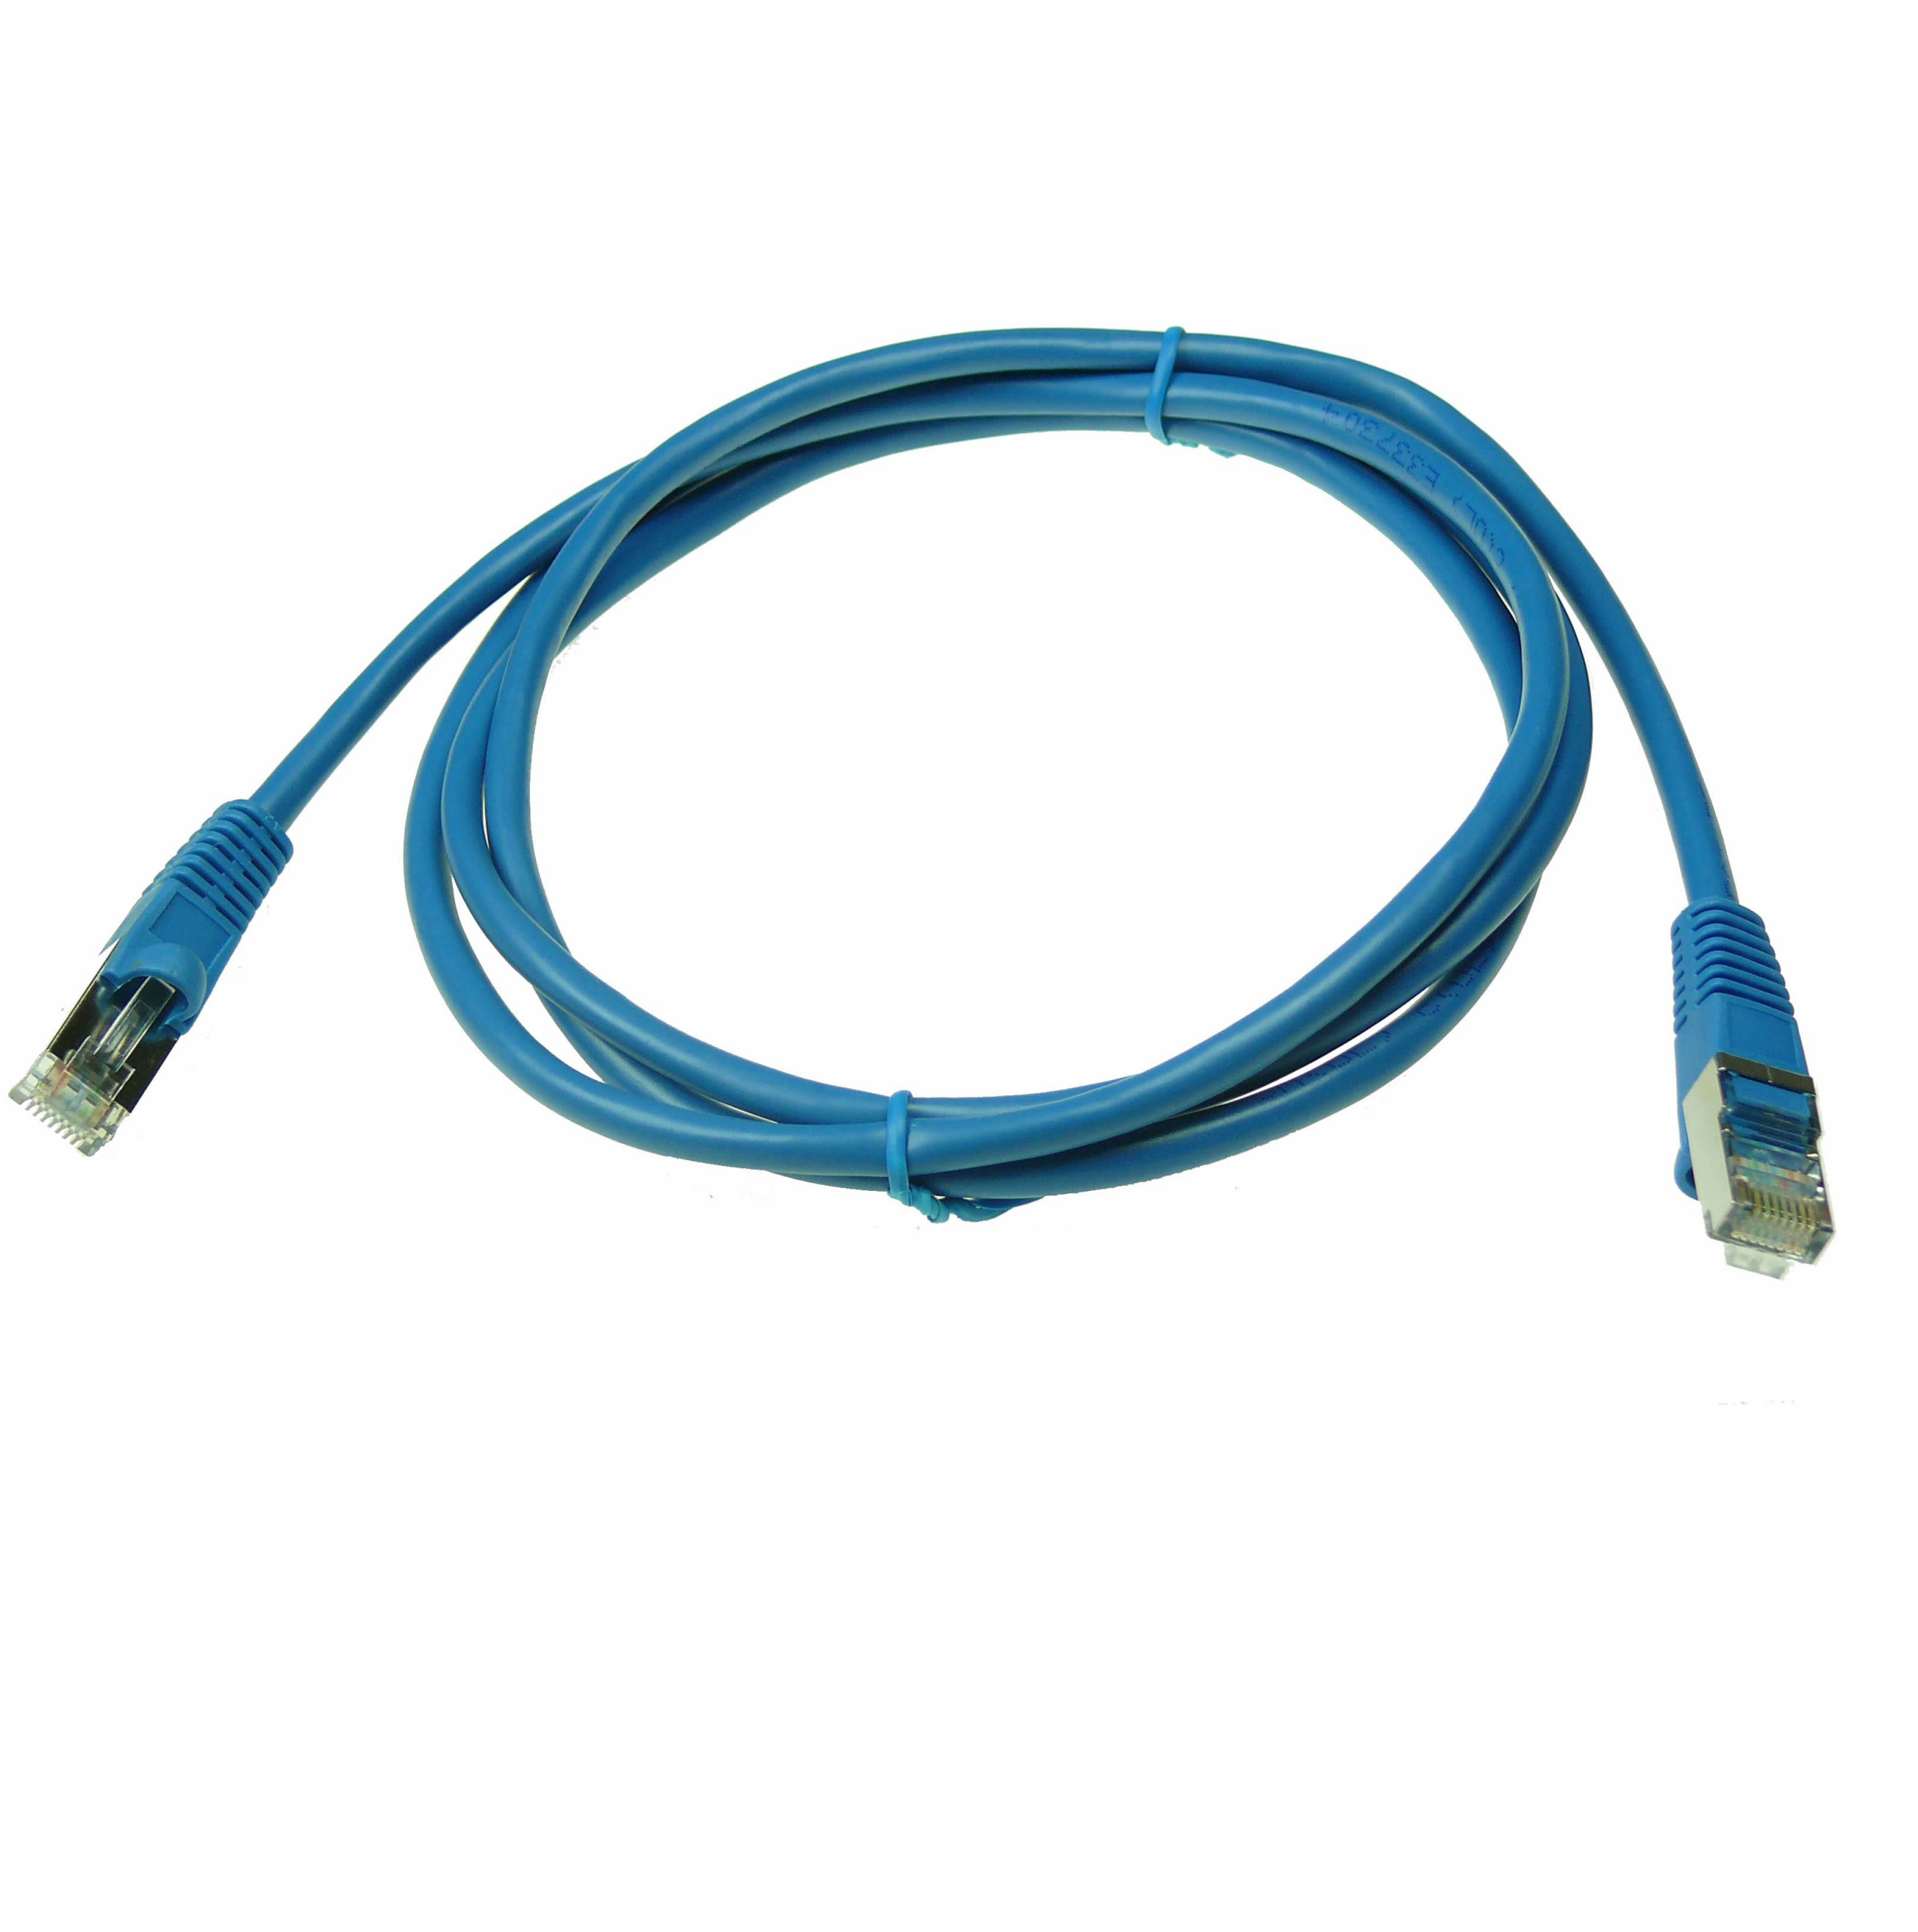 Axiom C6MBSFTPB50-AX 50ft Cat6 550MHz S//FTP Shielded Patch Cable Molded Boot Blue